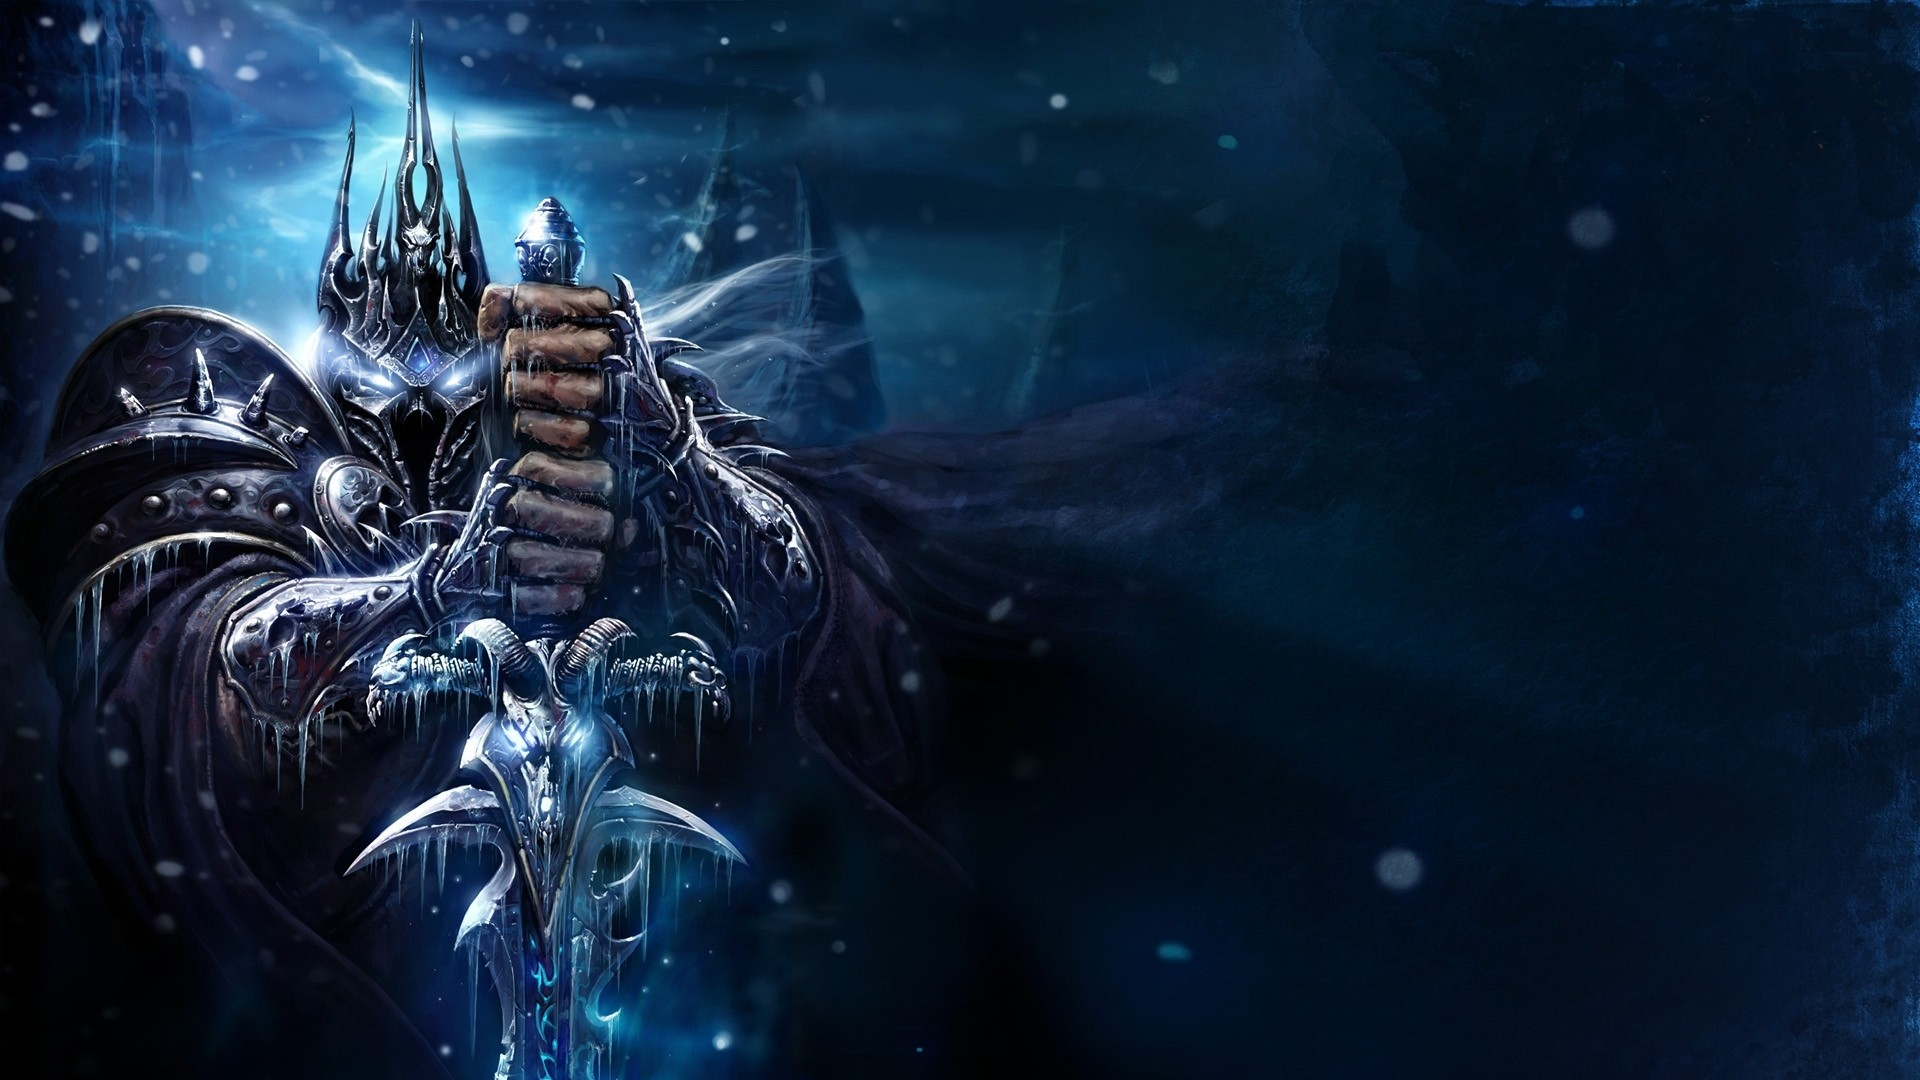 Coolest Car Colors >> Lich King Wallpaper (74+ images)